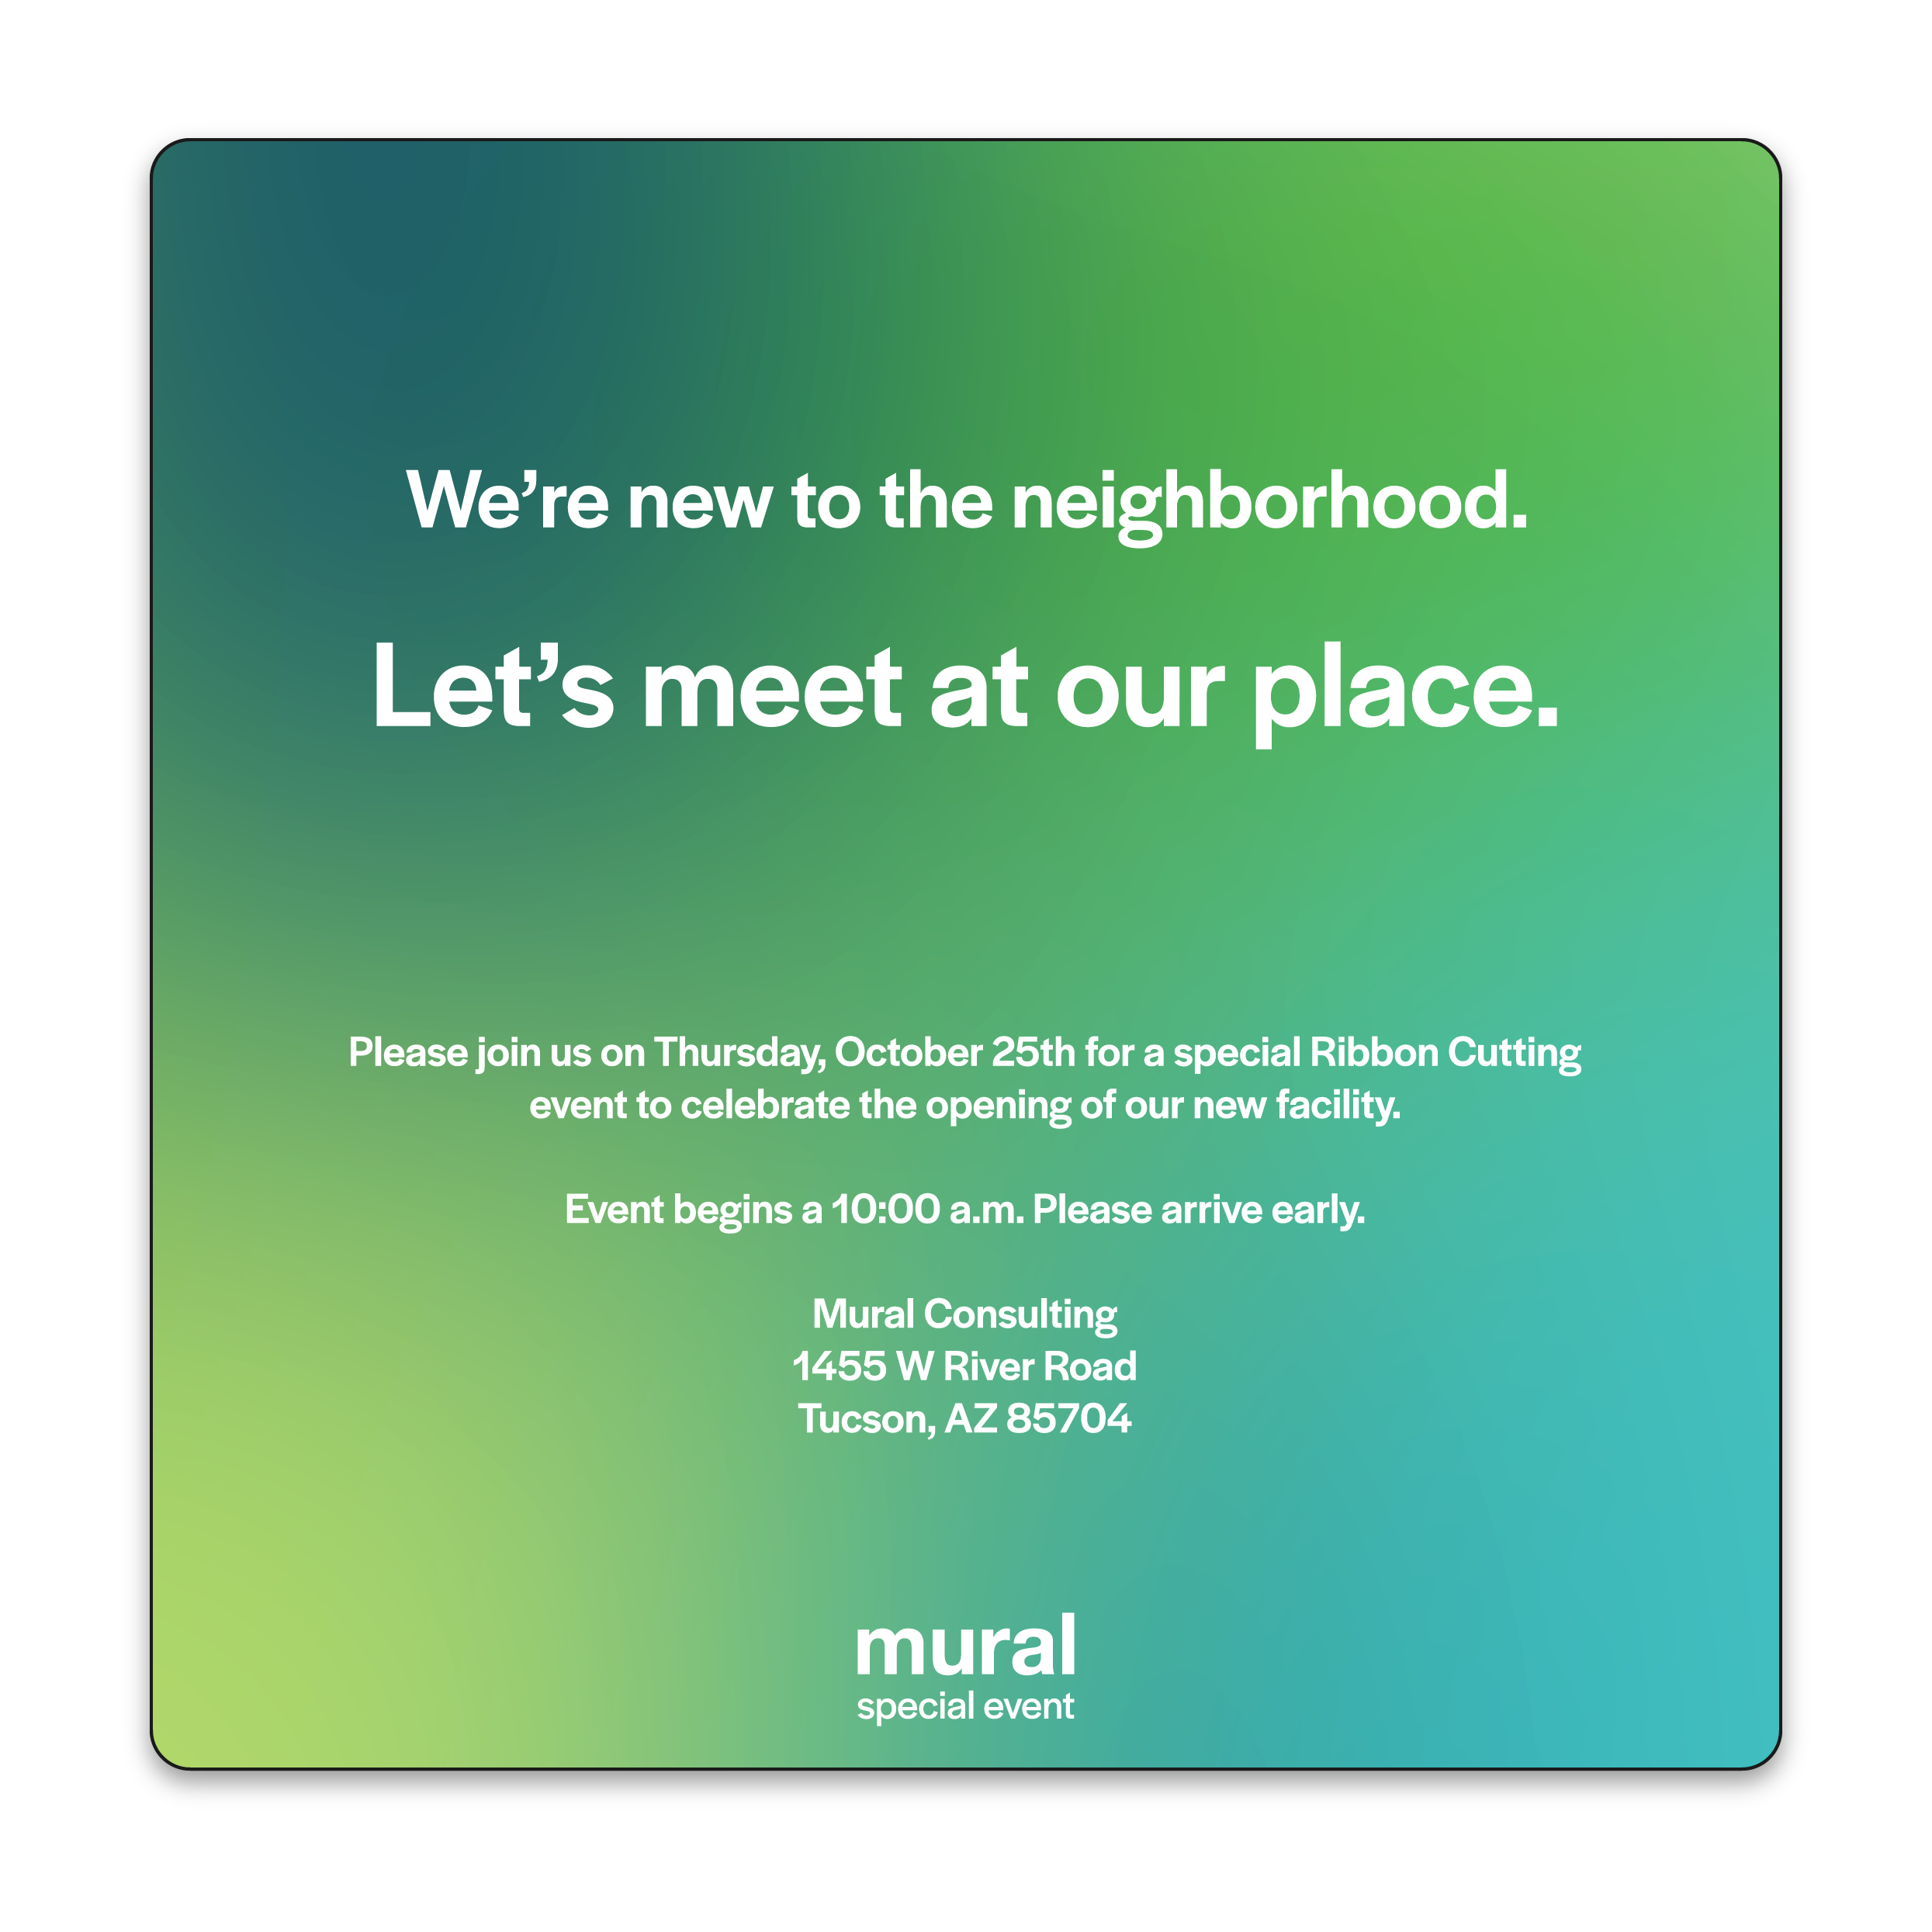 mural special event invitation: let's meet at our place